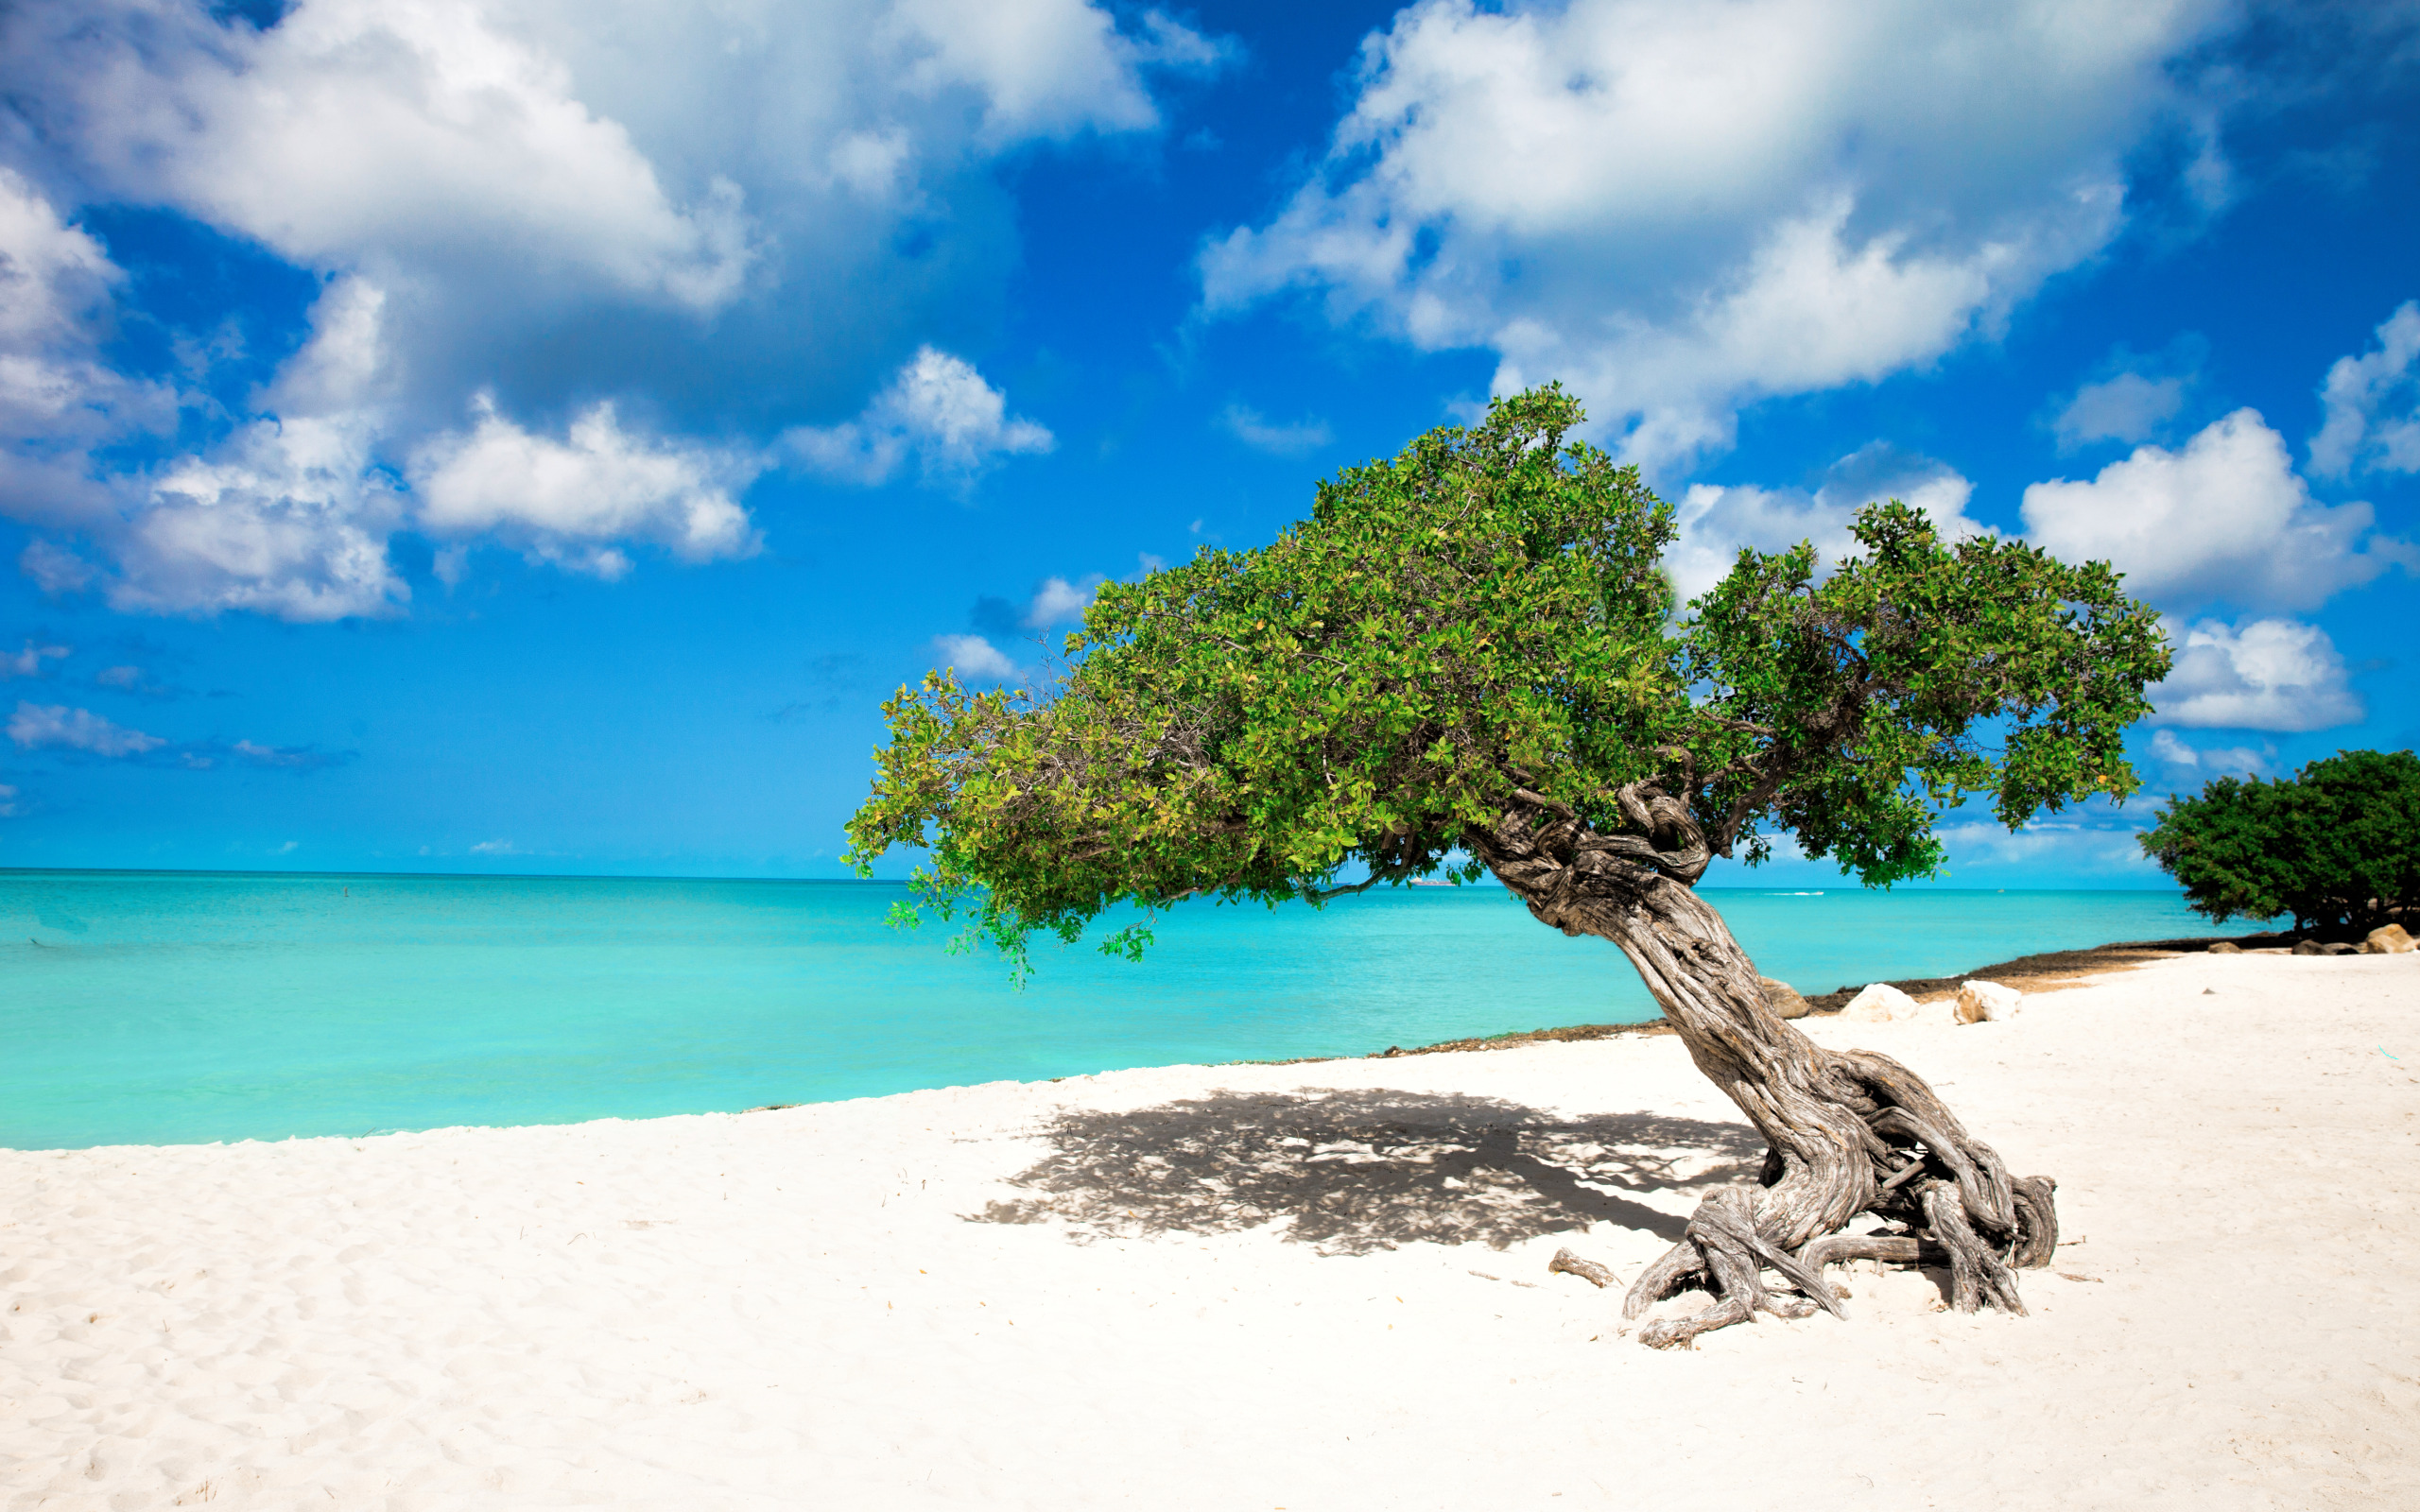 Aruba Beach Wallpaper